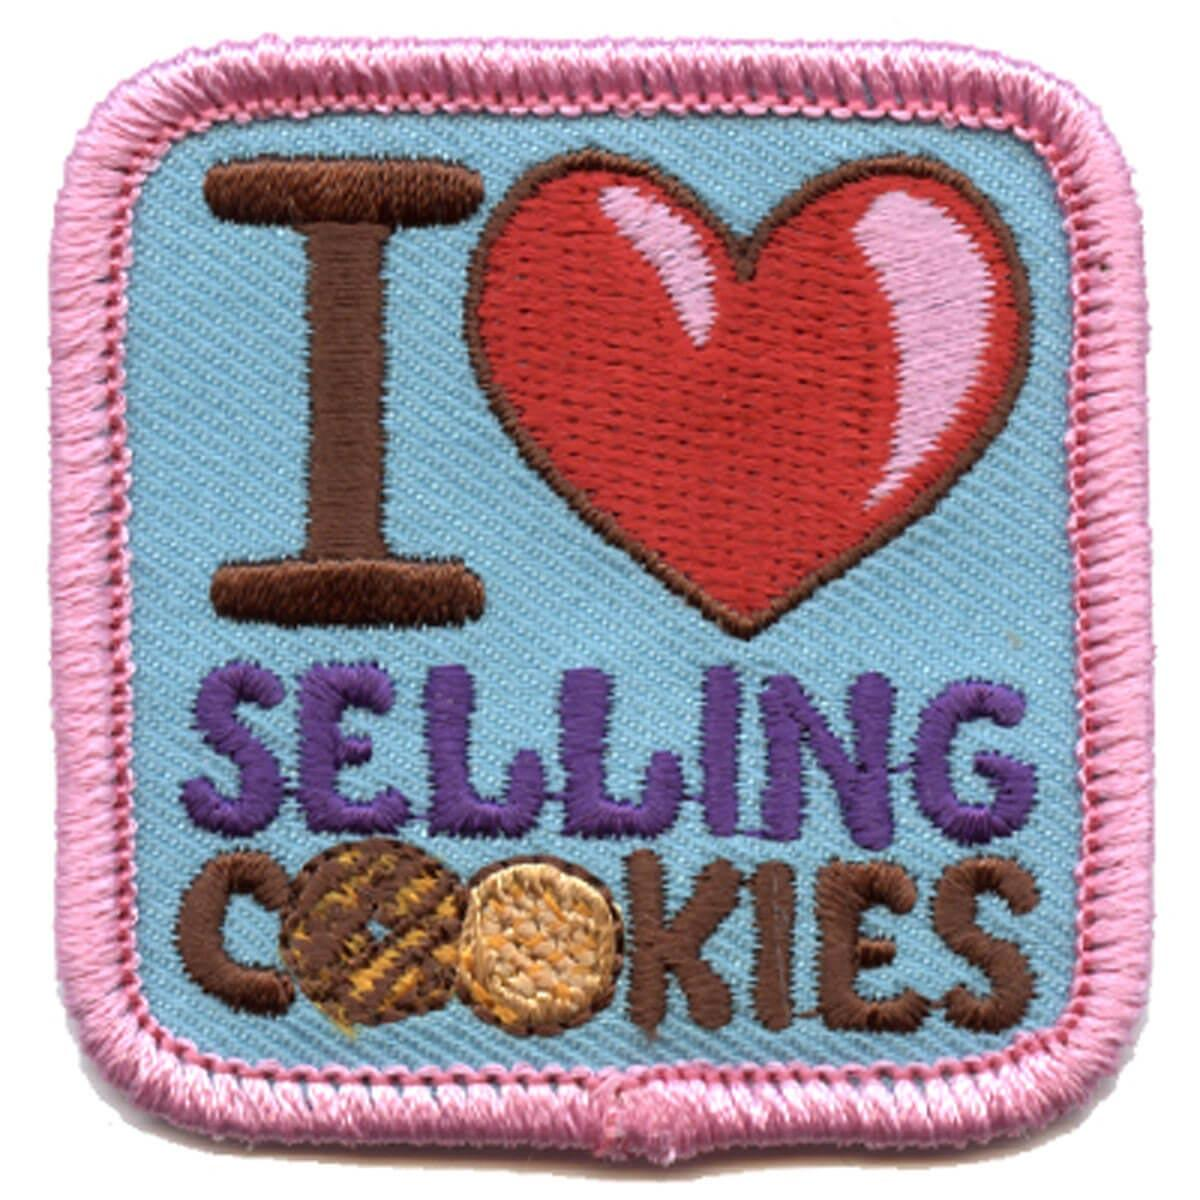 GSNI I <3 Selling Cookies